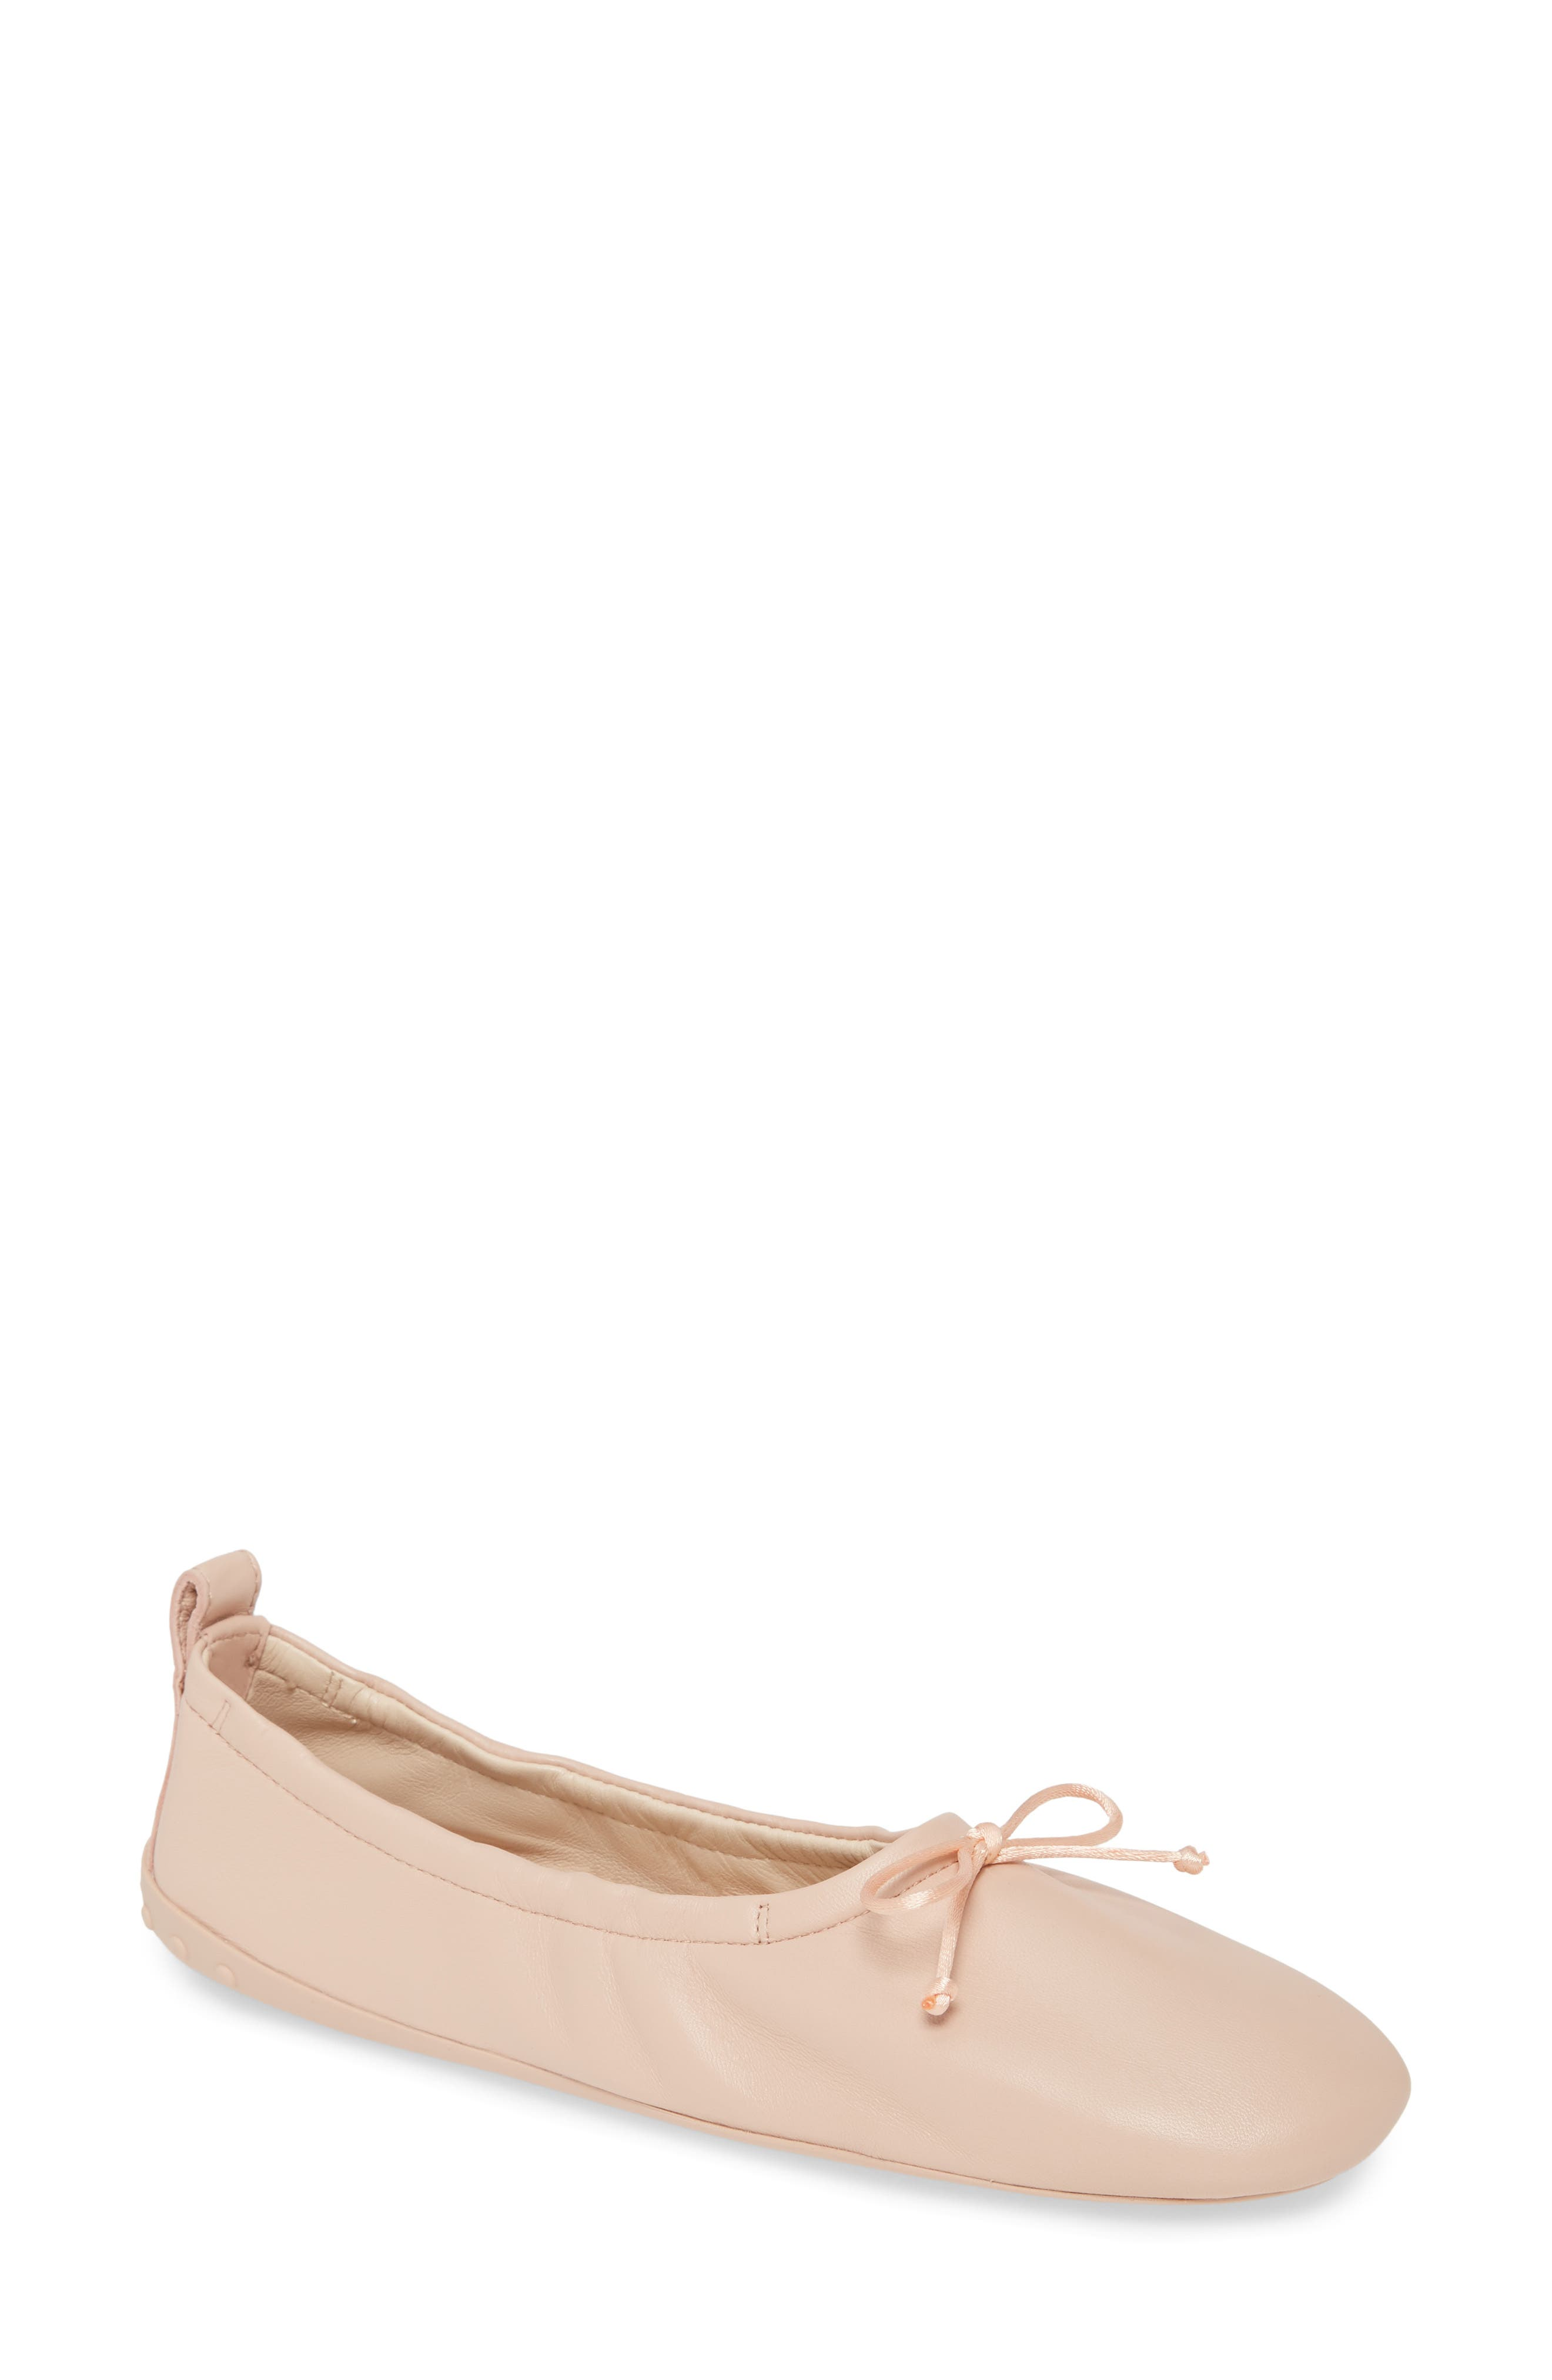 Tod's Clearance Shoes | Nordstrom